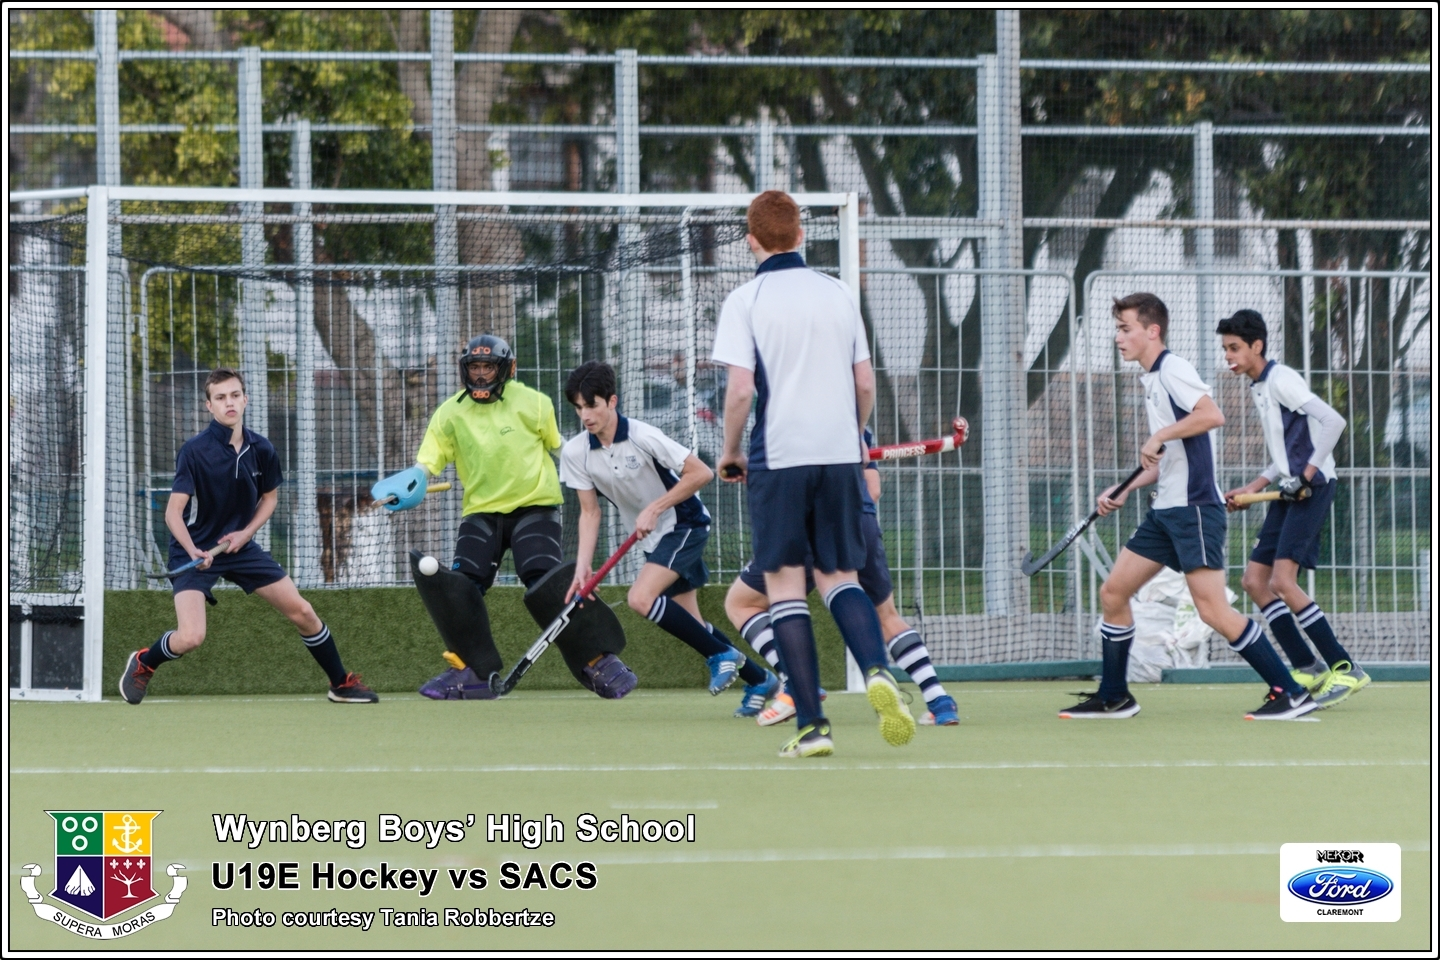 U19E vs SACS, Friday 24 August 2018